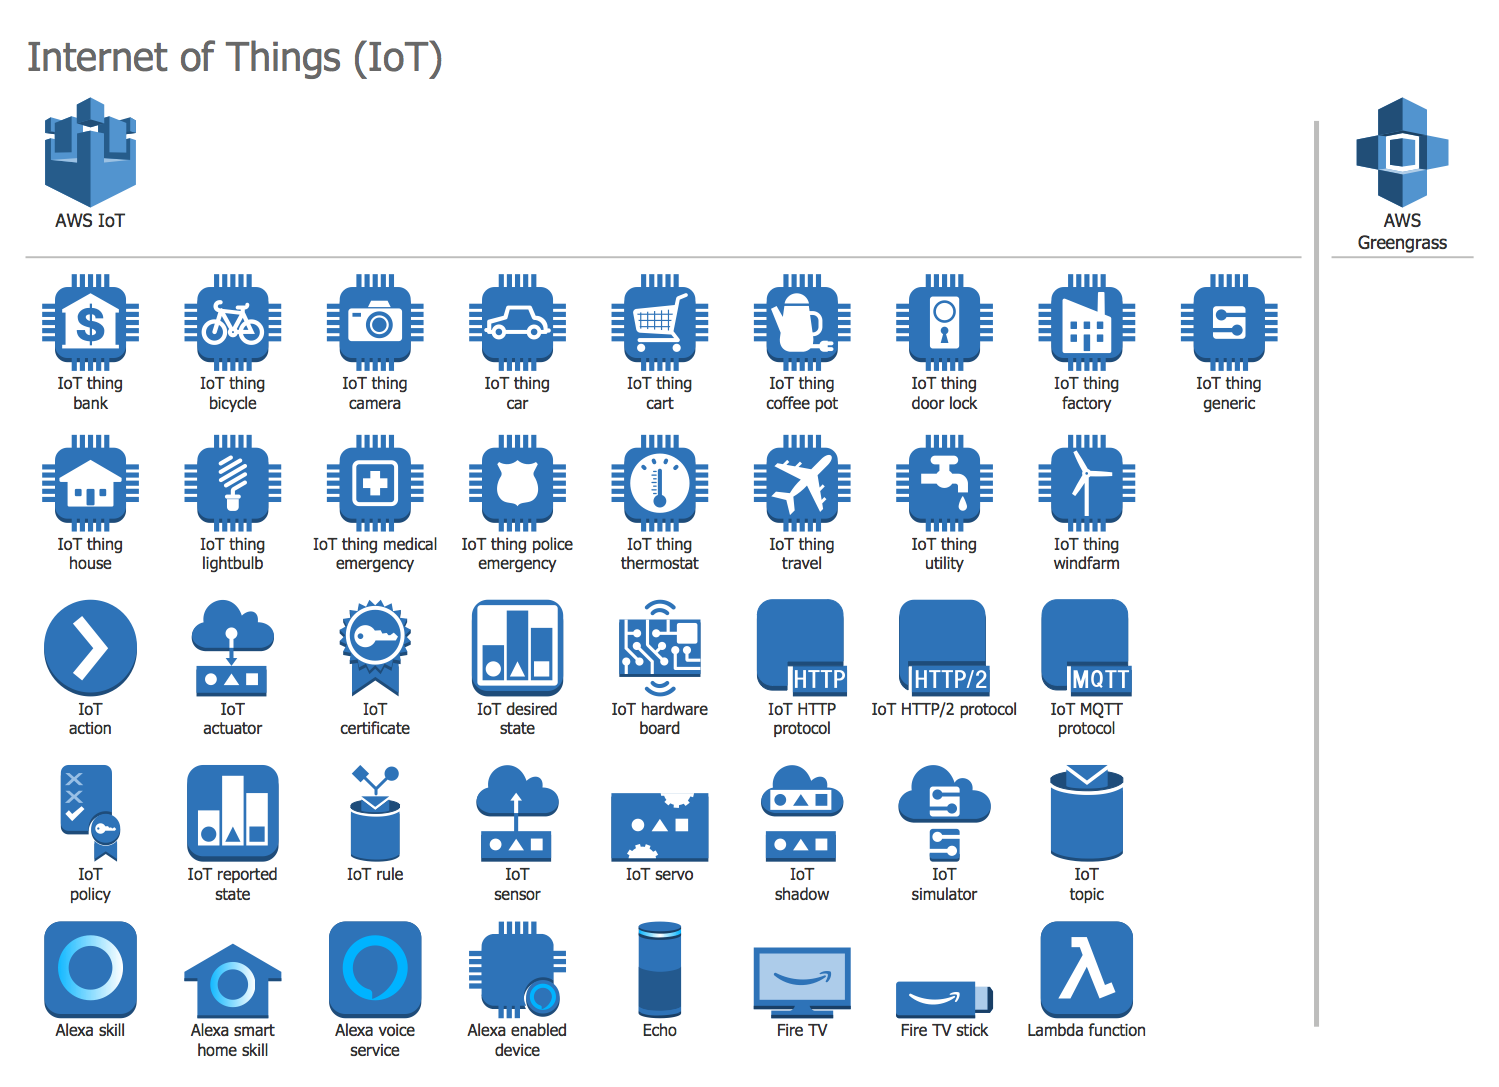 Design Elements — AWS Internet of Things (IoT)